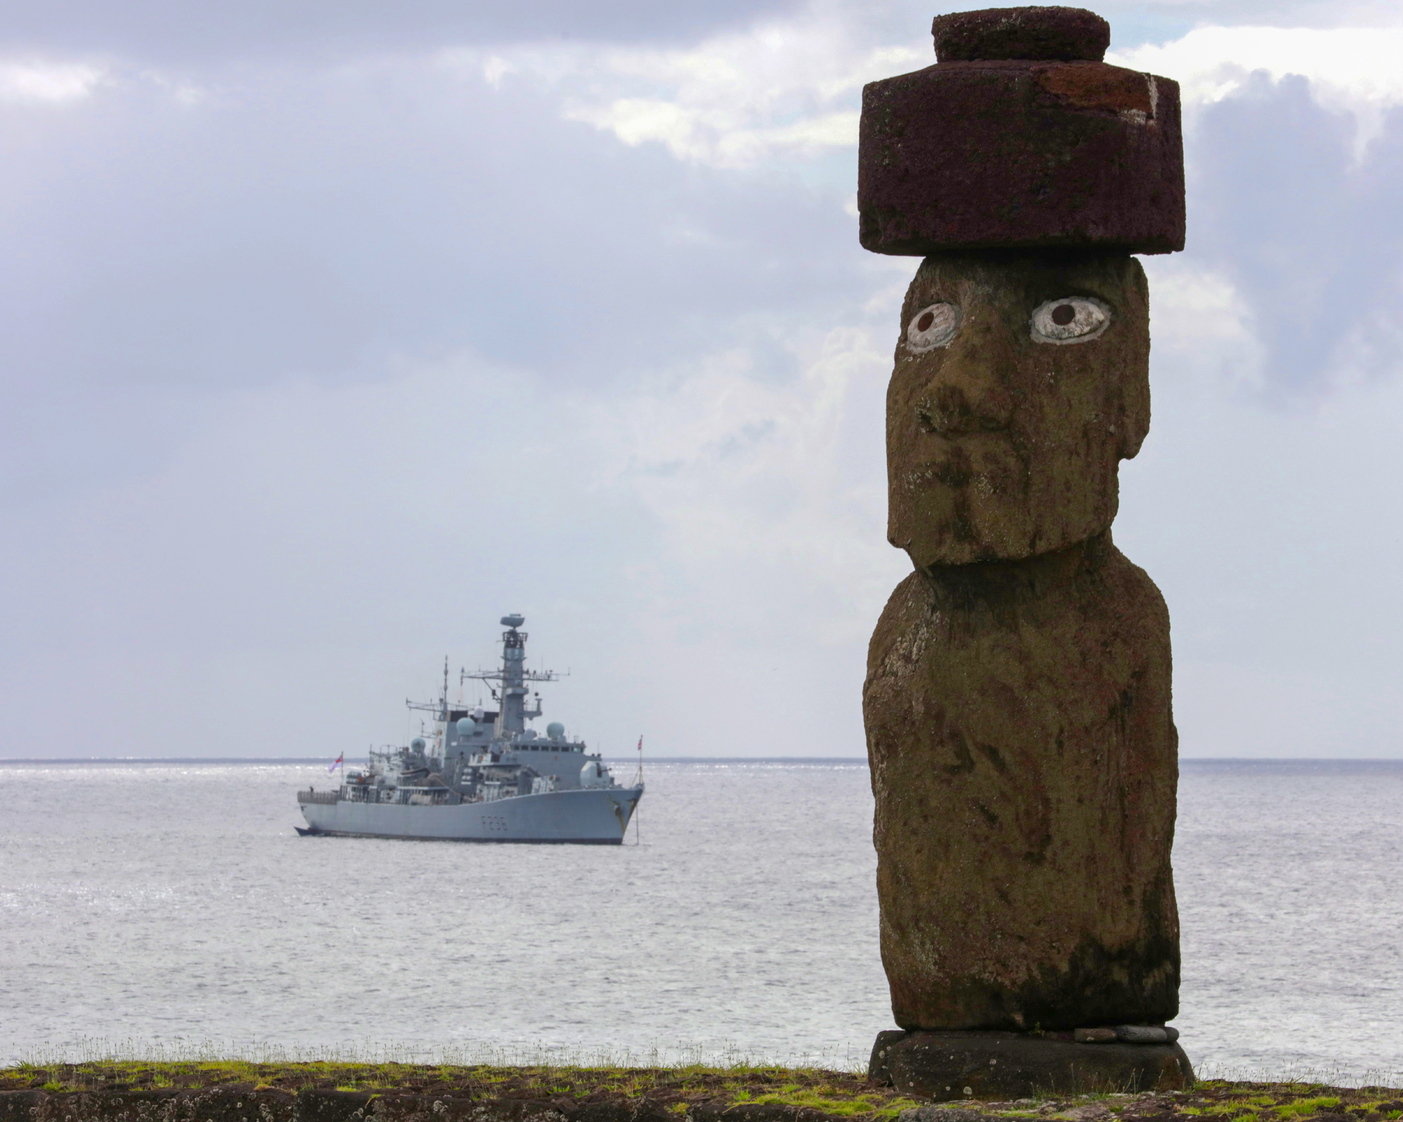 epa07251792 A handout picture provided by the British Ministry of Defence showing a Lone Moai (stone statue) on Easter Island with British Royal Navy, Type 23 frigate, HMS Montrose behind in the sea on 27 December 2018, (issued 28 December 2018). The British MOD reported that HMS Montrose visited one of the wonders of the world which is Easter Island otherwise known as Rapa Nui, home of the famous Moai, huge stone statues that where made hundreds of years ago by the ancestors that lived on the island. There's 1000 Moai on the island. HMS Montrose is currently deployed on a global deployment where it's visiting many countries on the way to Bahrain. She is currently two month in to a seven month deployment.  EPA/LPhot JOE CARTER /BRITISH MINISTRY OF DEFENCE/HANDOUT MANDATORY CREDIT: MOD - JOE CARTER /CROWN COPYRIGHT HANDOUT EDITORIAL USE ONLY/NO SALES